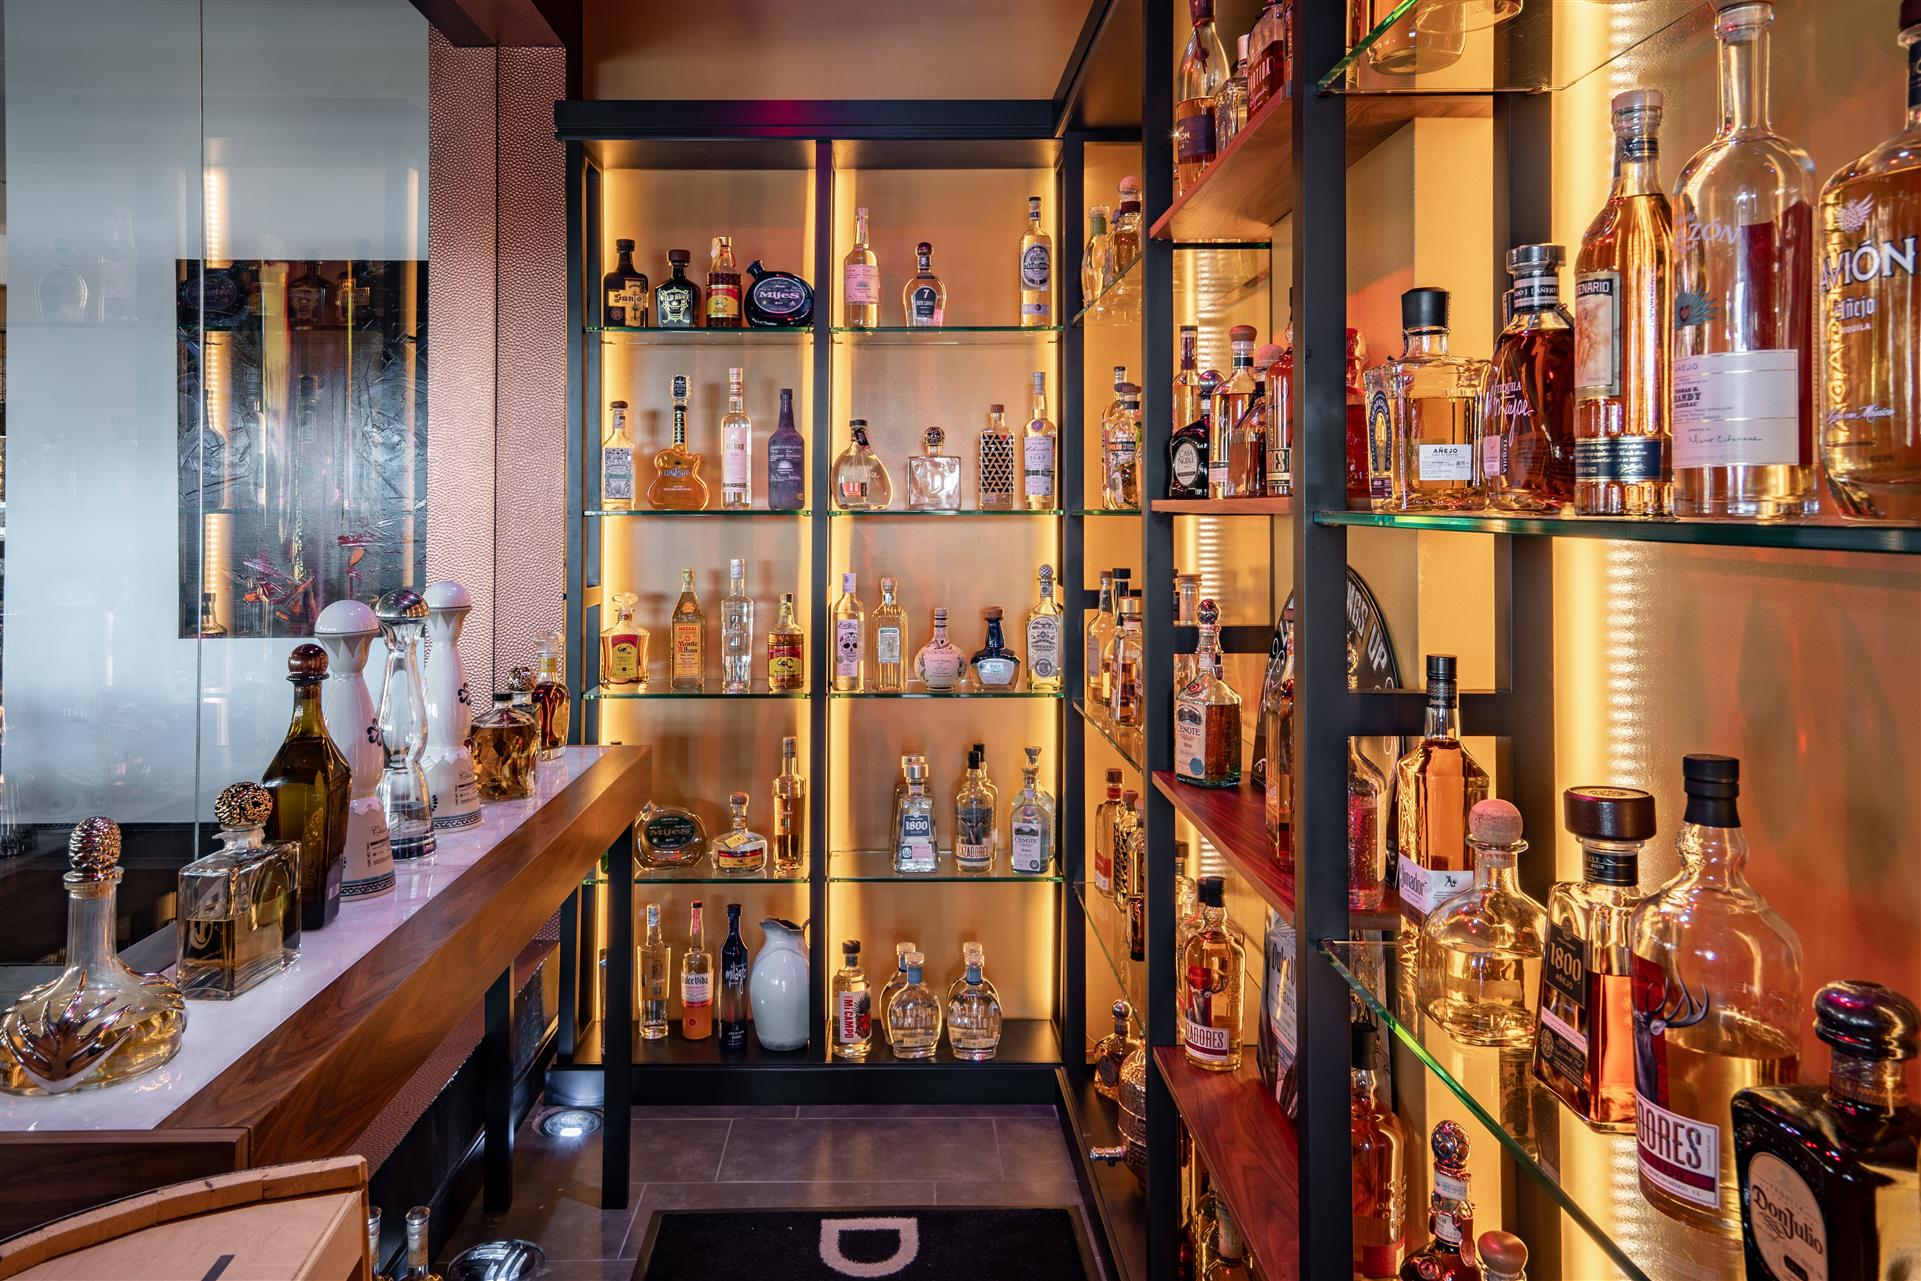 tequila cellar with shelves filled with bottles of alcohol